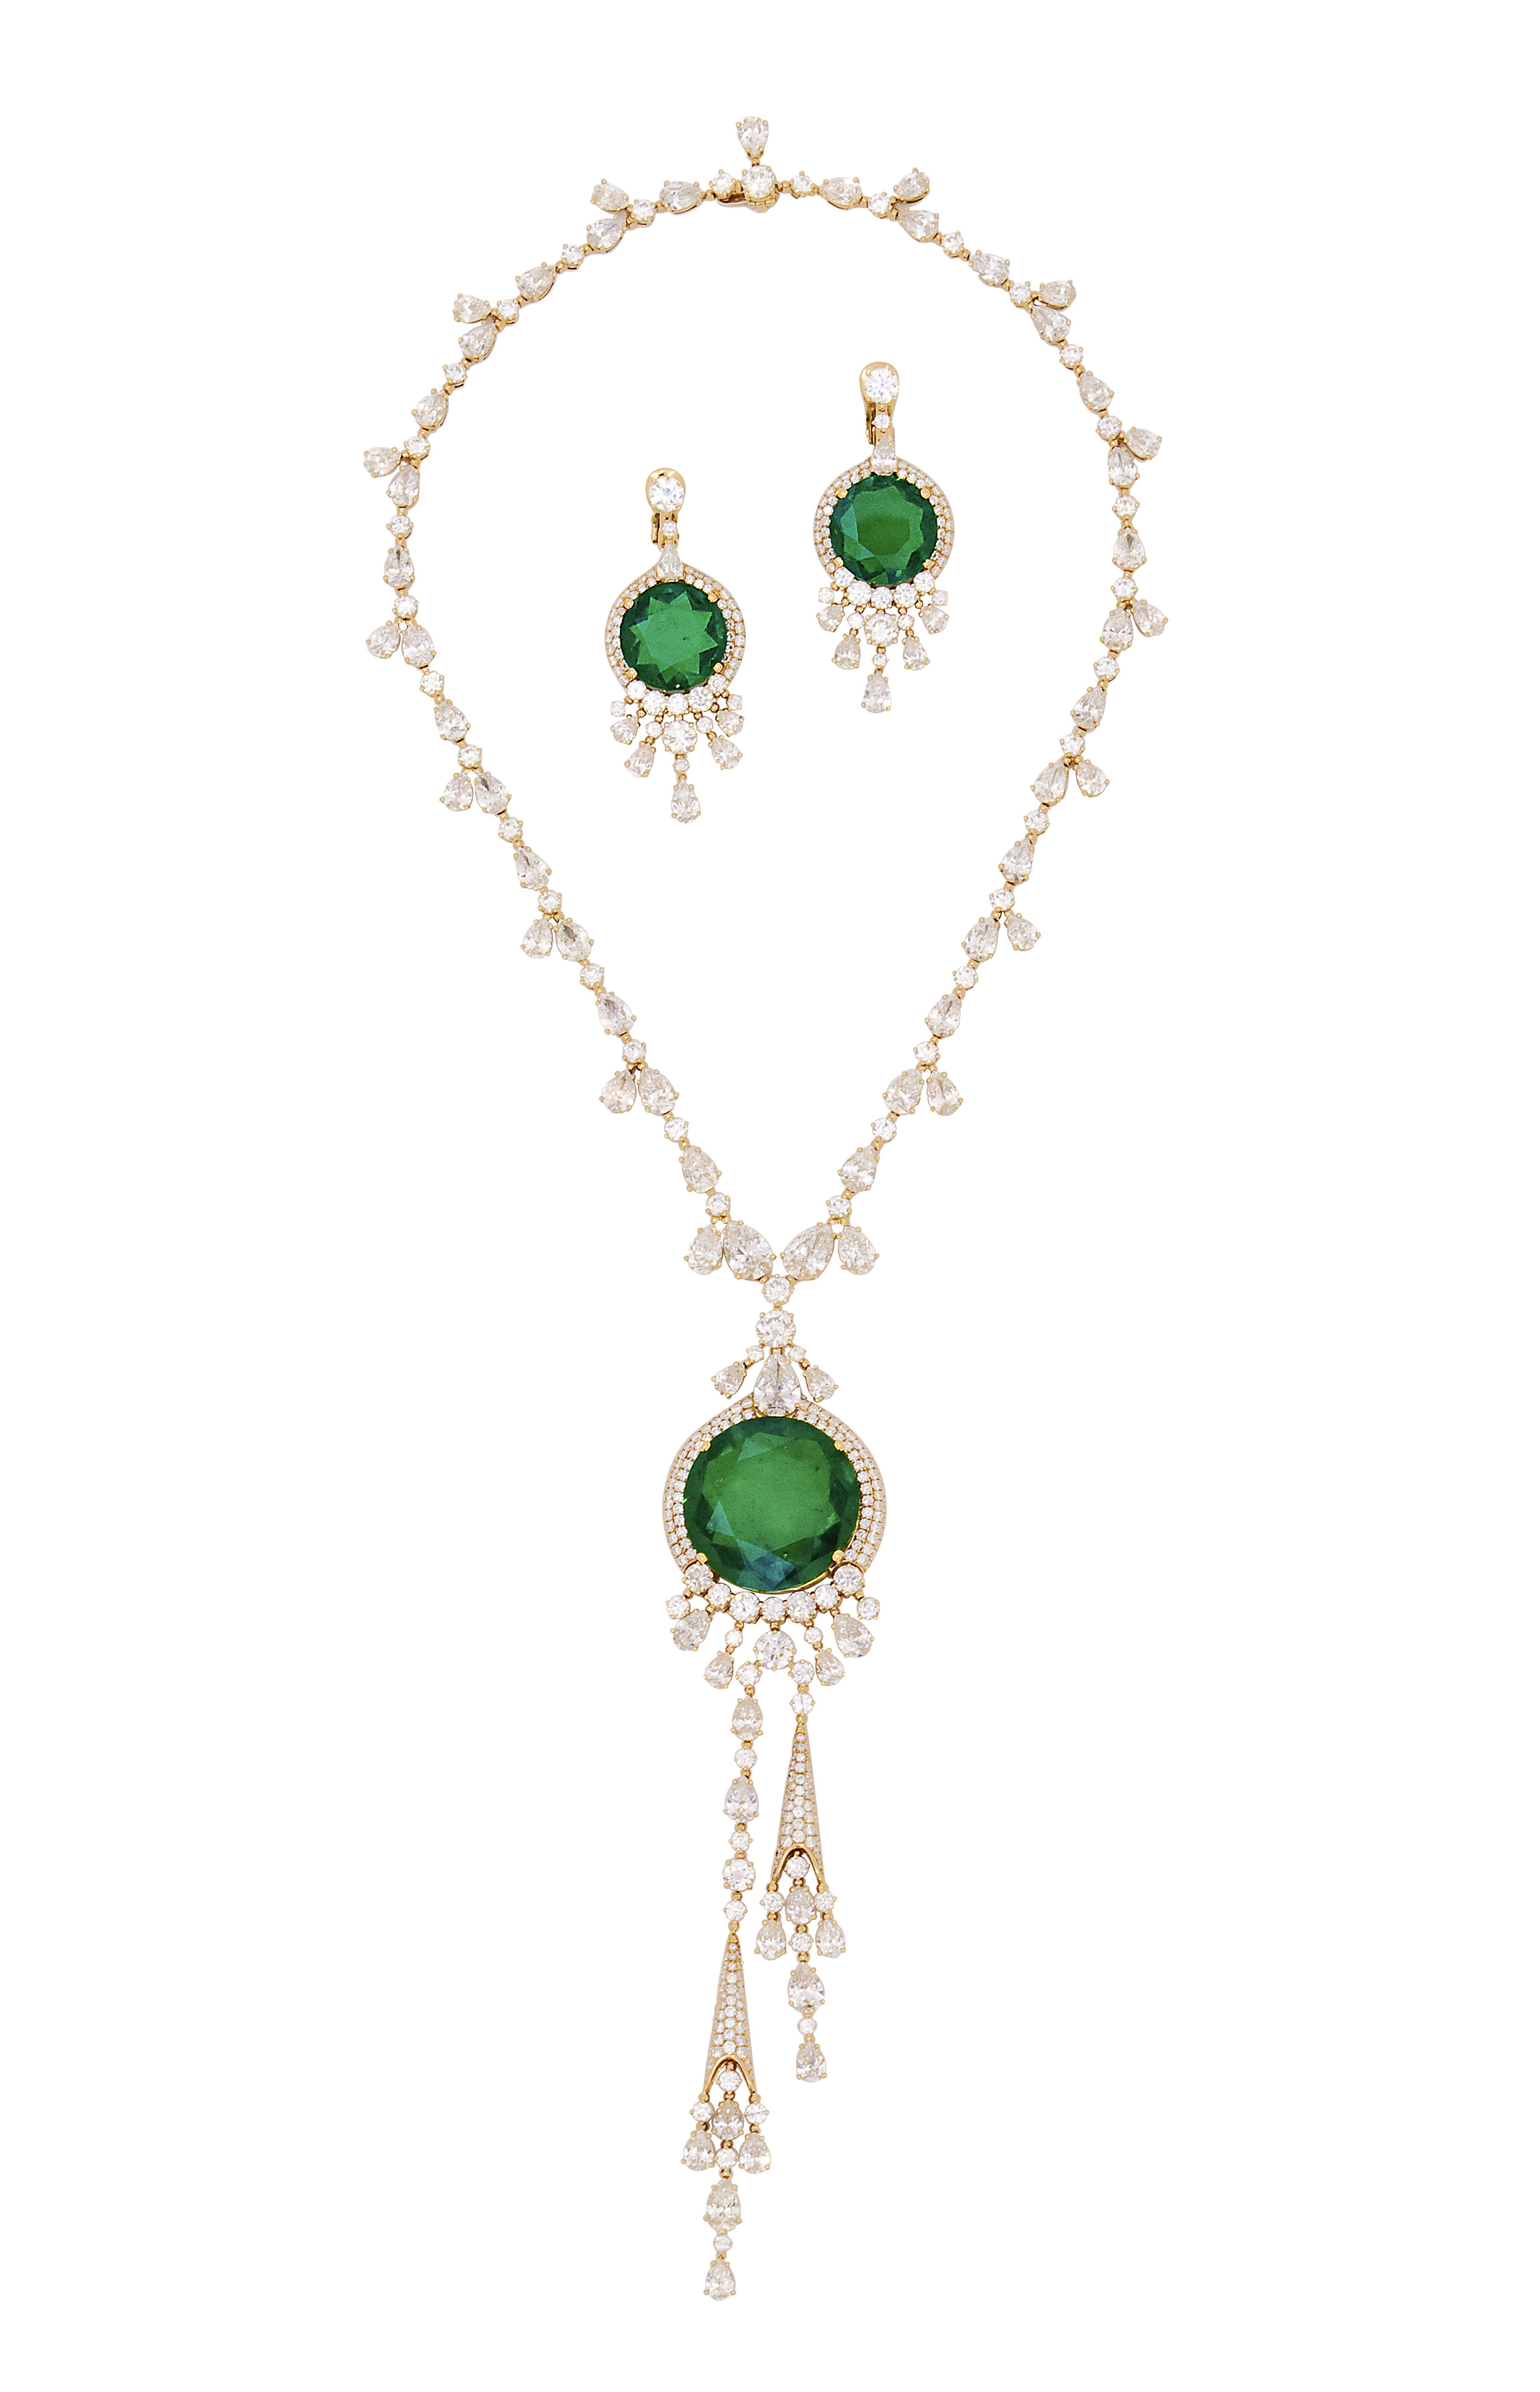 Bvlgari Emerald Earrings and Necklace - photo by Andrew Werner.jpg